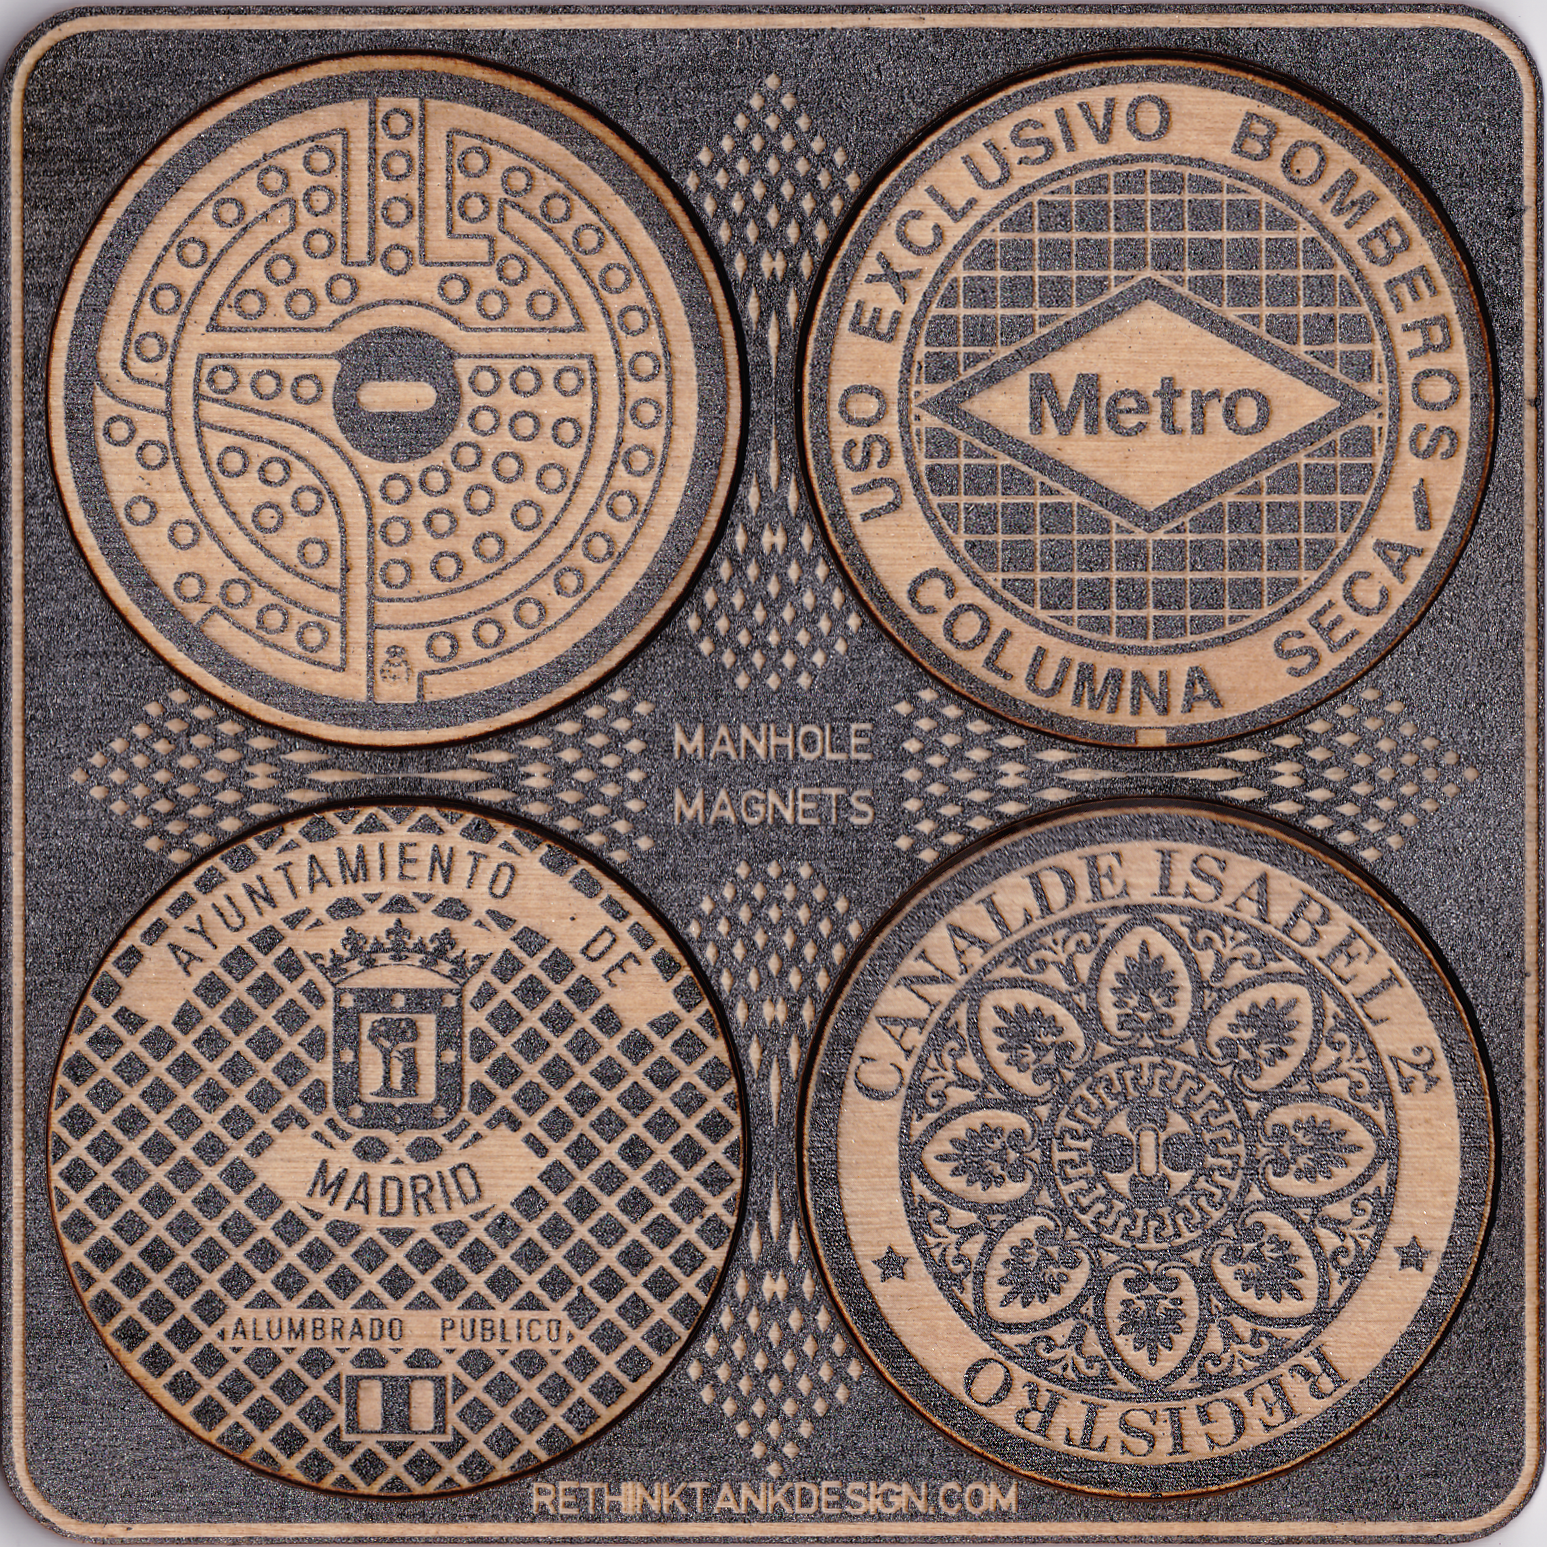 NEW FOR 2019:MANHOLE COVER MAGNETS - COVER THAT INFLATED GRADE WITH PRIDE!